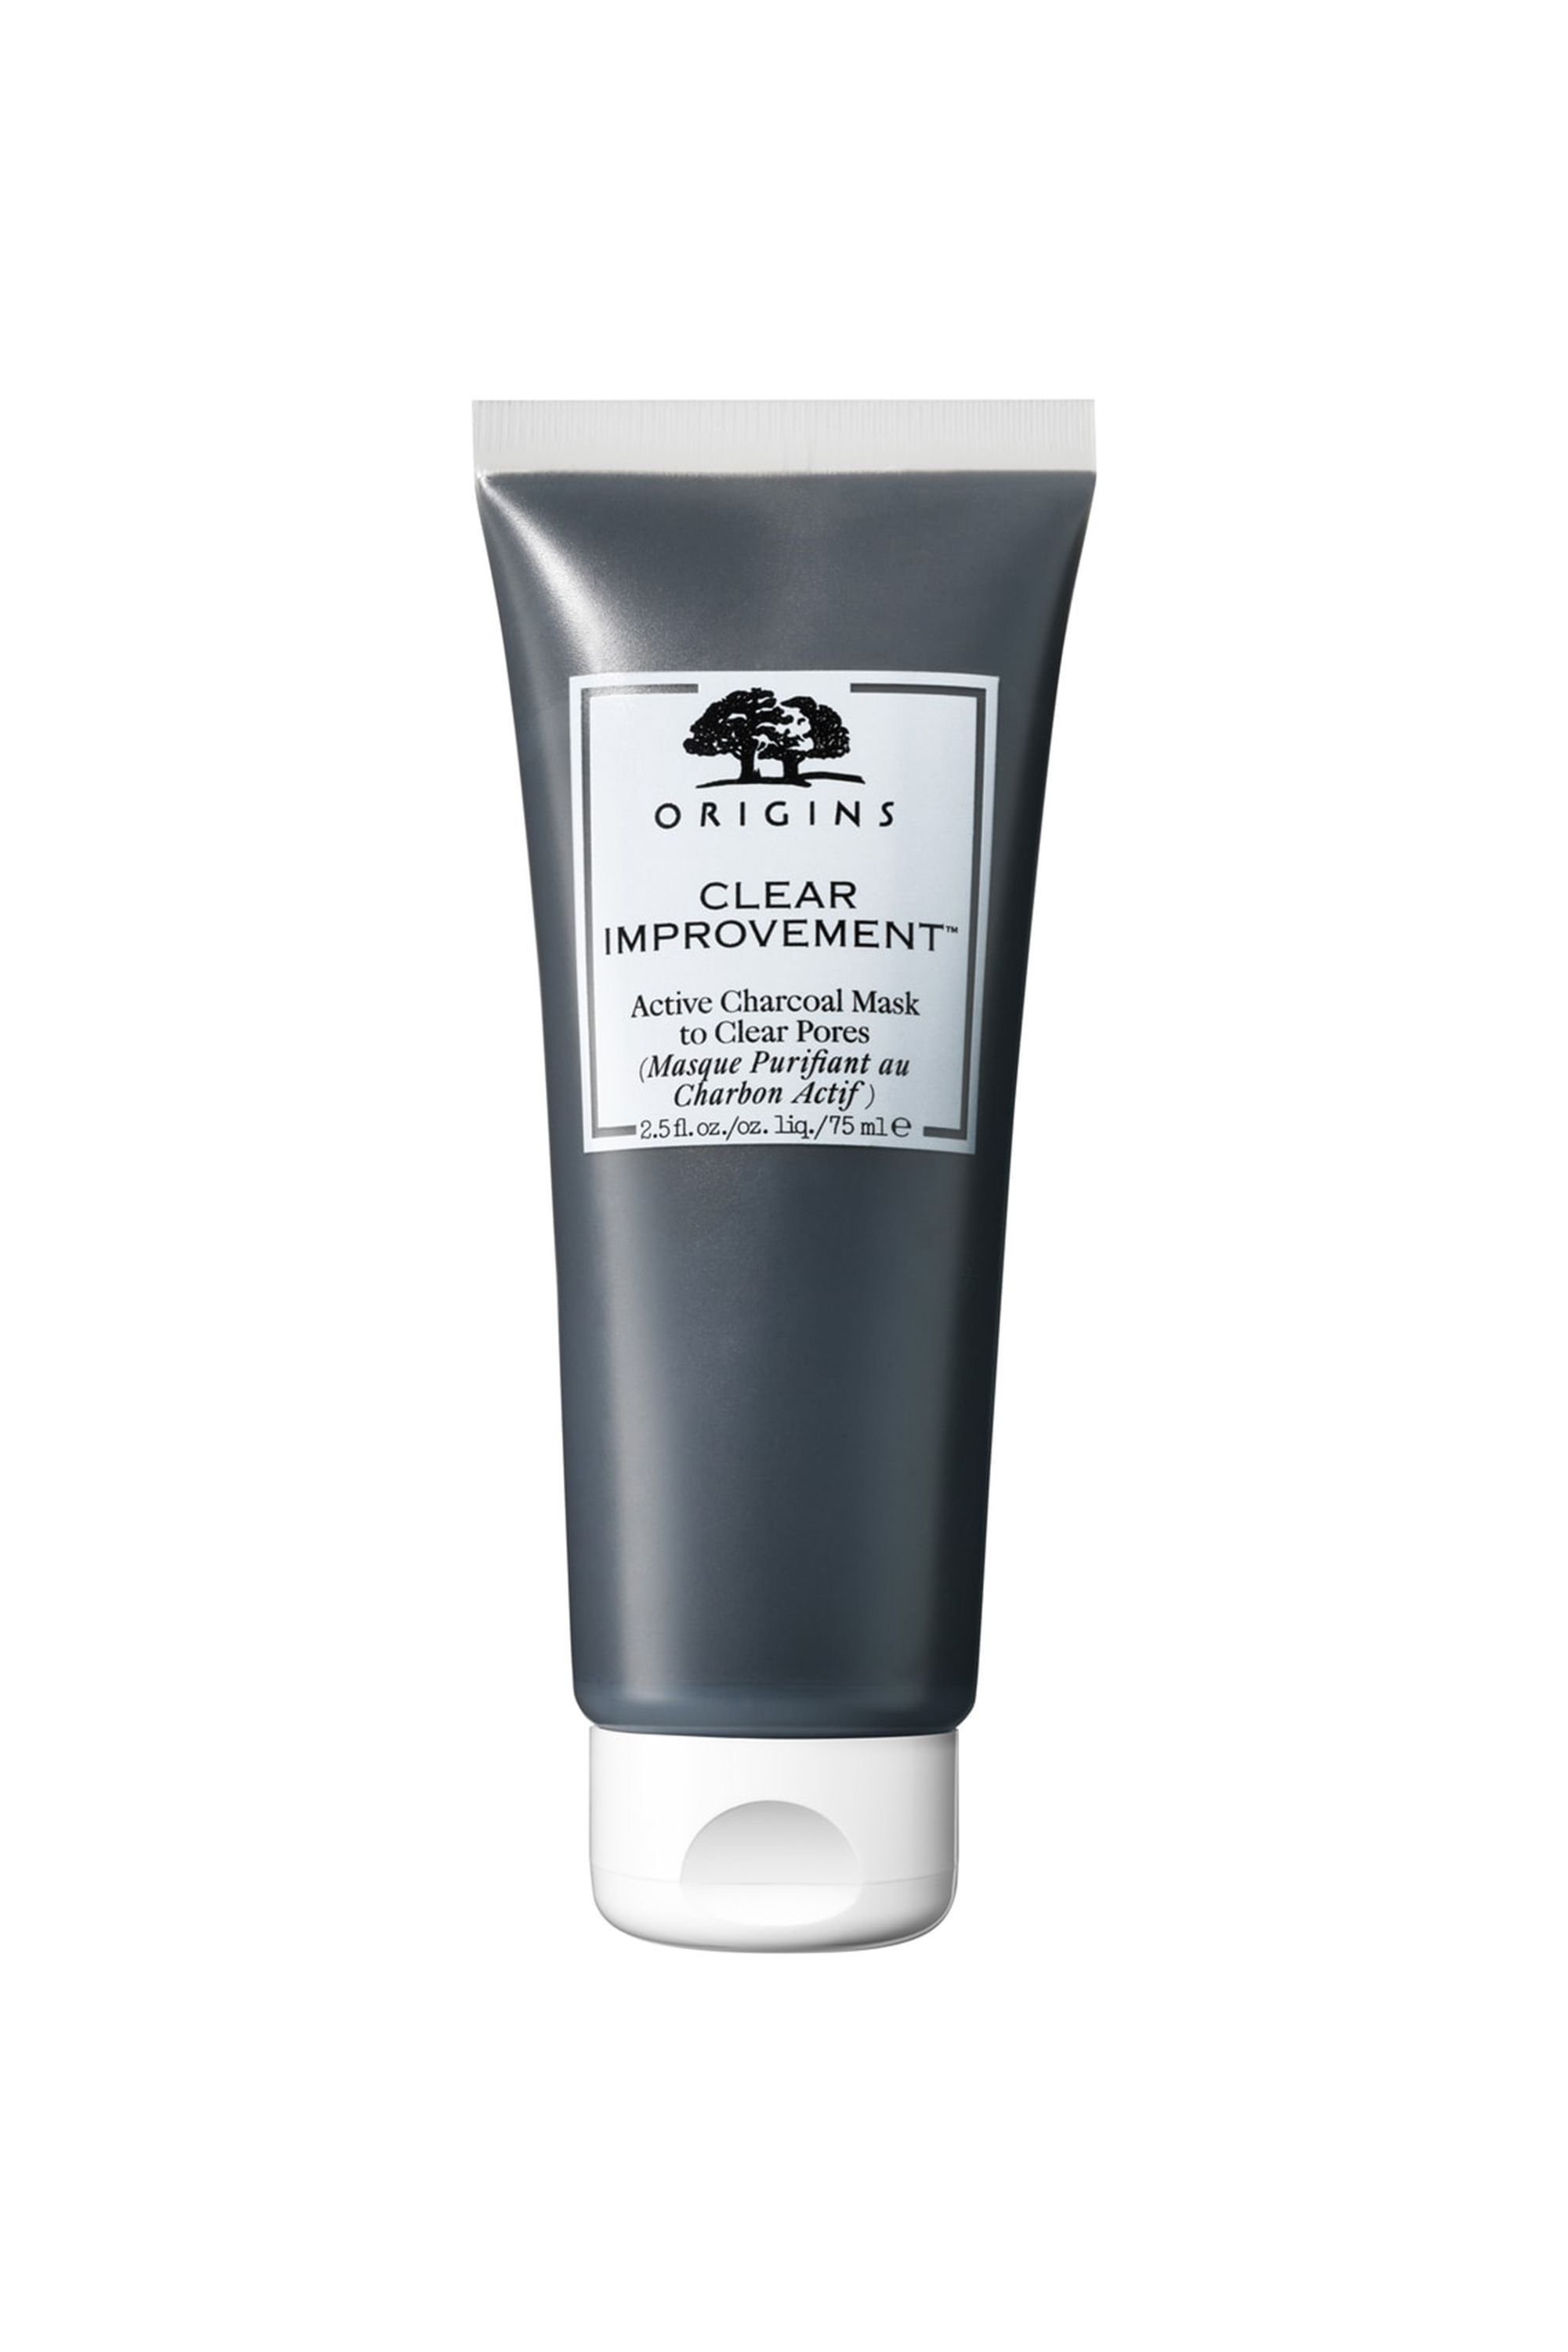 Retexturizing Mask with Rose Clay Origins sephora.com $13.00 SHOP NOW This purifying mask brings impurities to the surface and exfoliates the skin to reveal a healthier and brighter complexion. Rose clay is gentle enough for sensitive skin and ideal for drier skin types, as it's not as harsh as red or white clays.